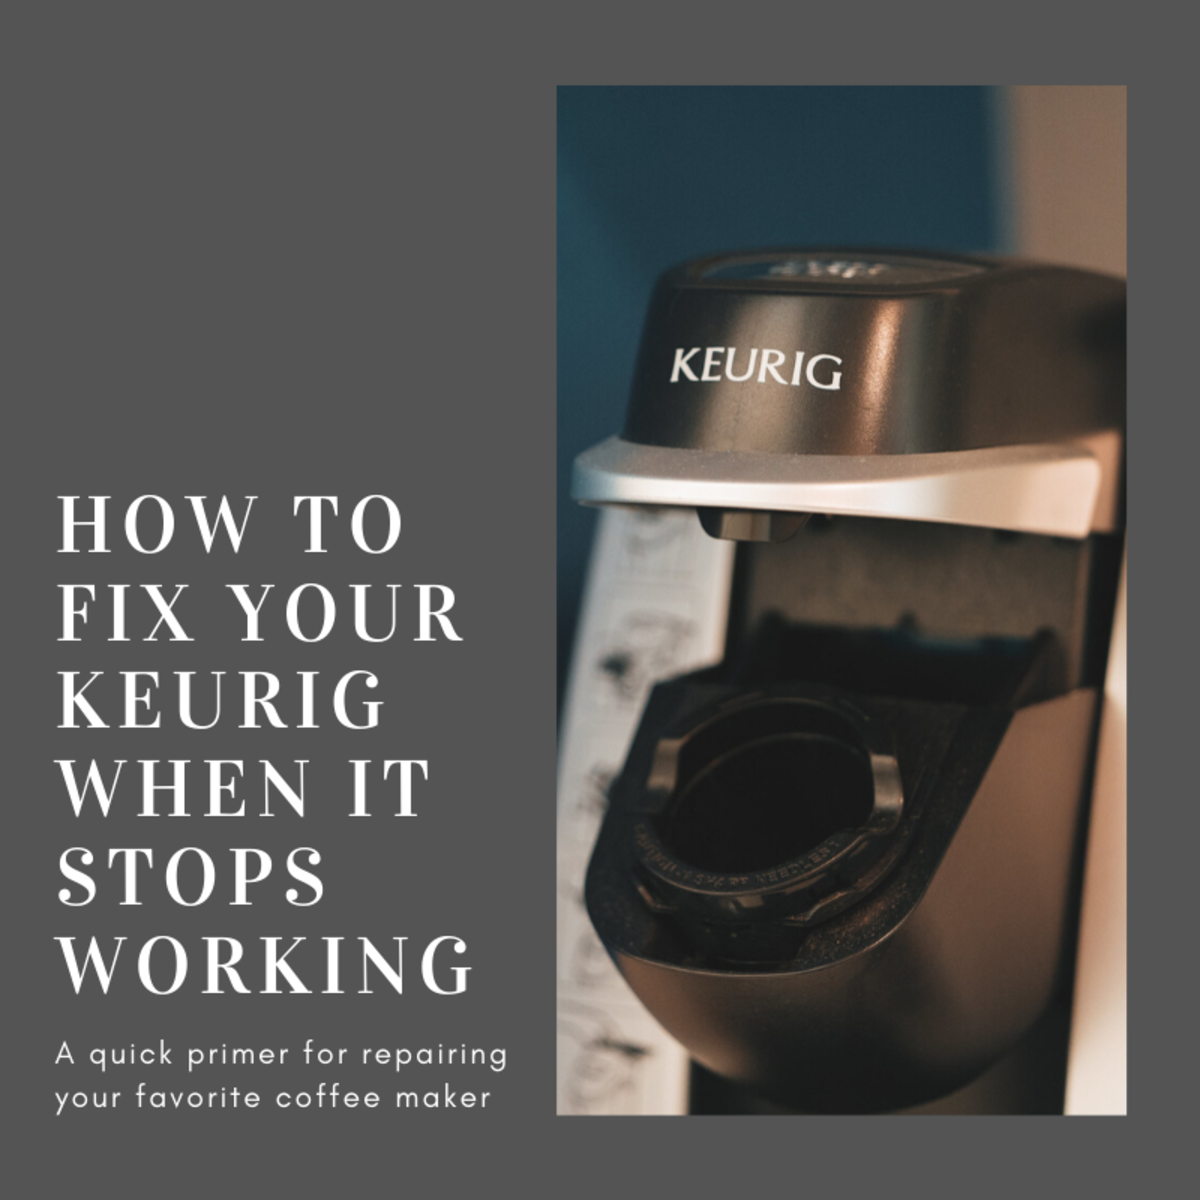 This guide will break down how to quickly repair your Keurig coffee maker.